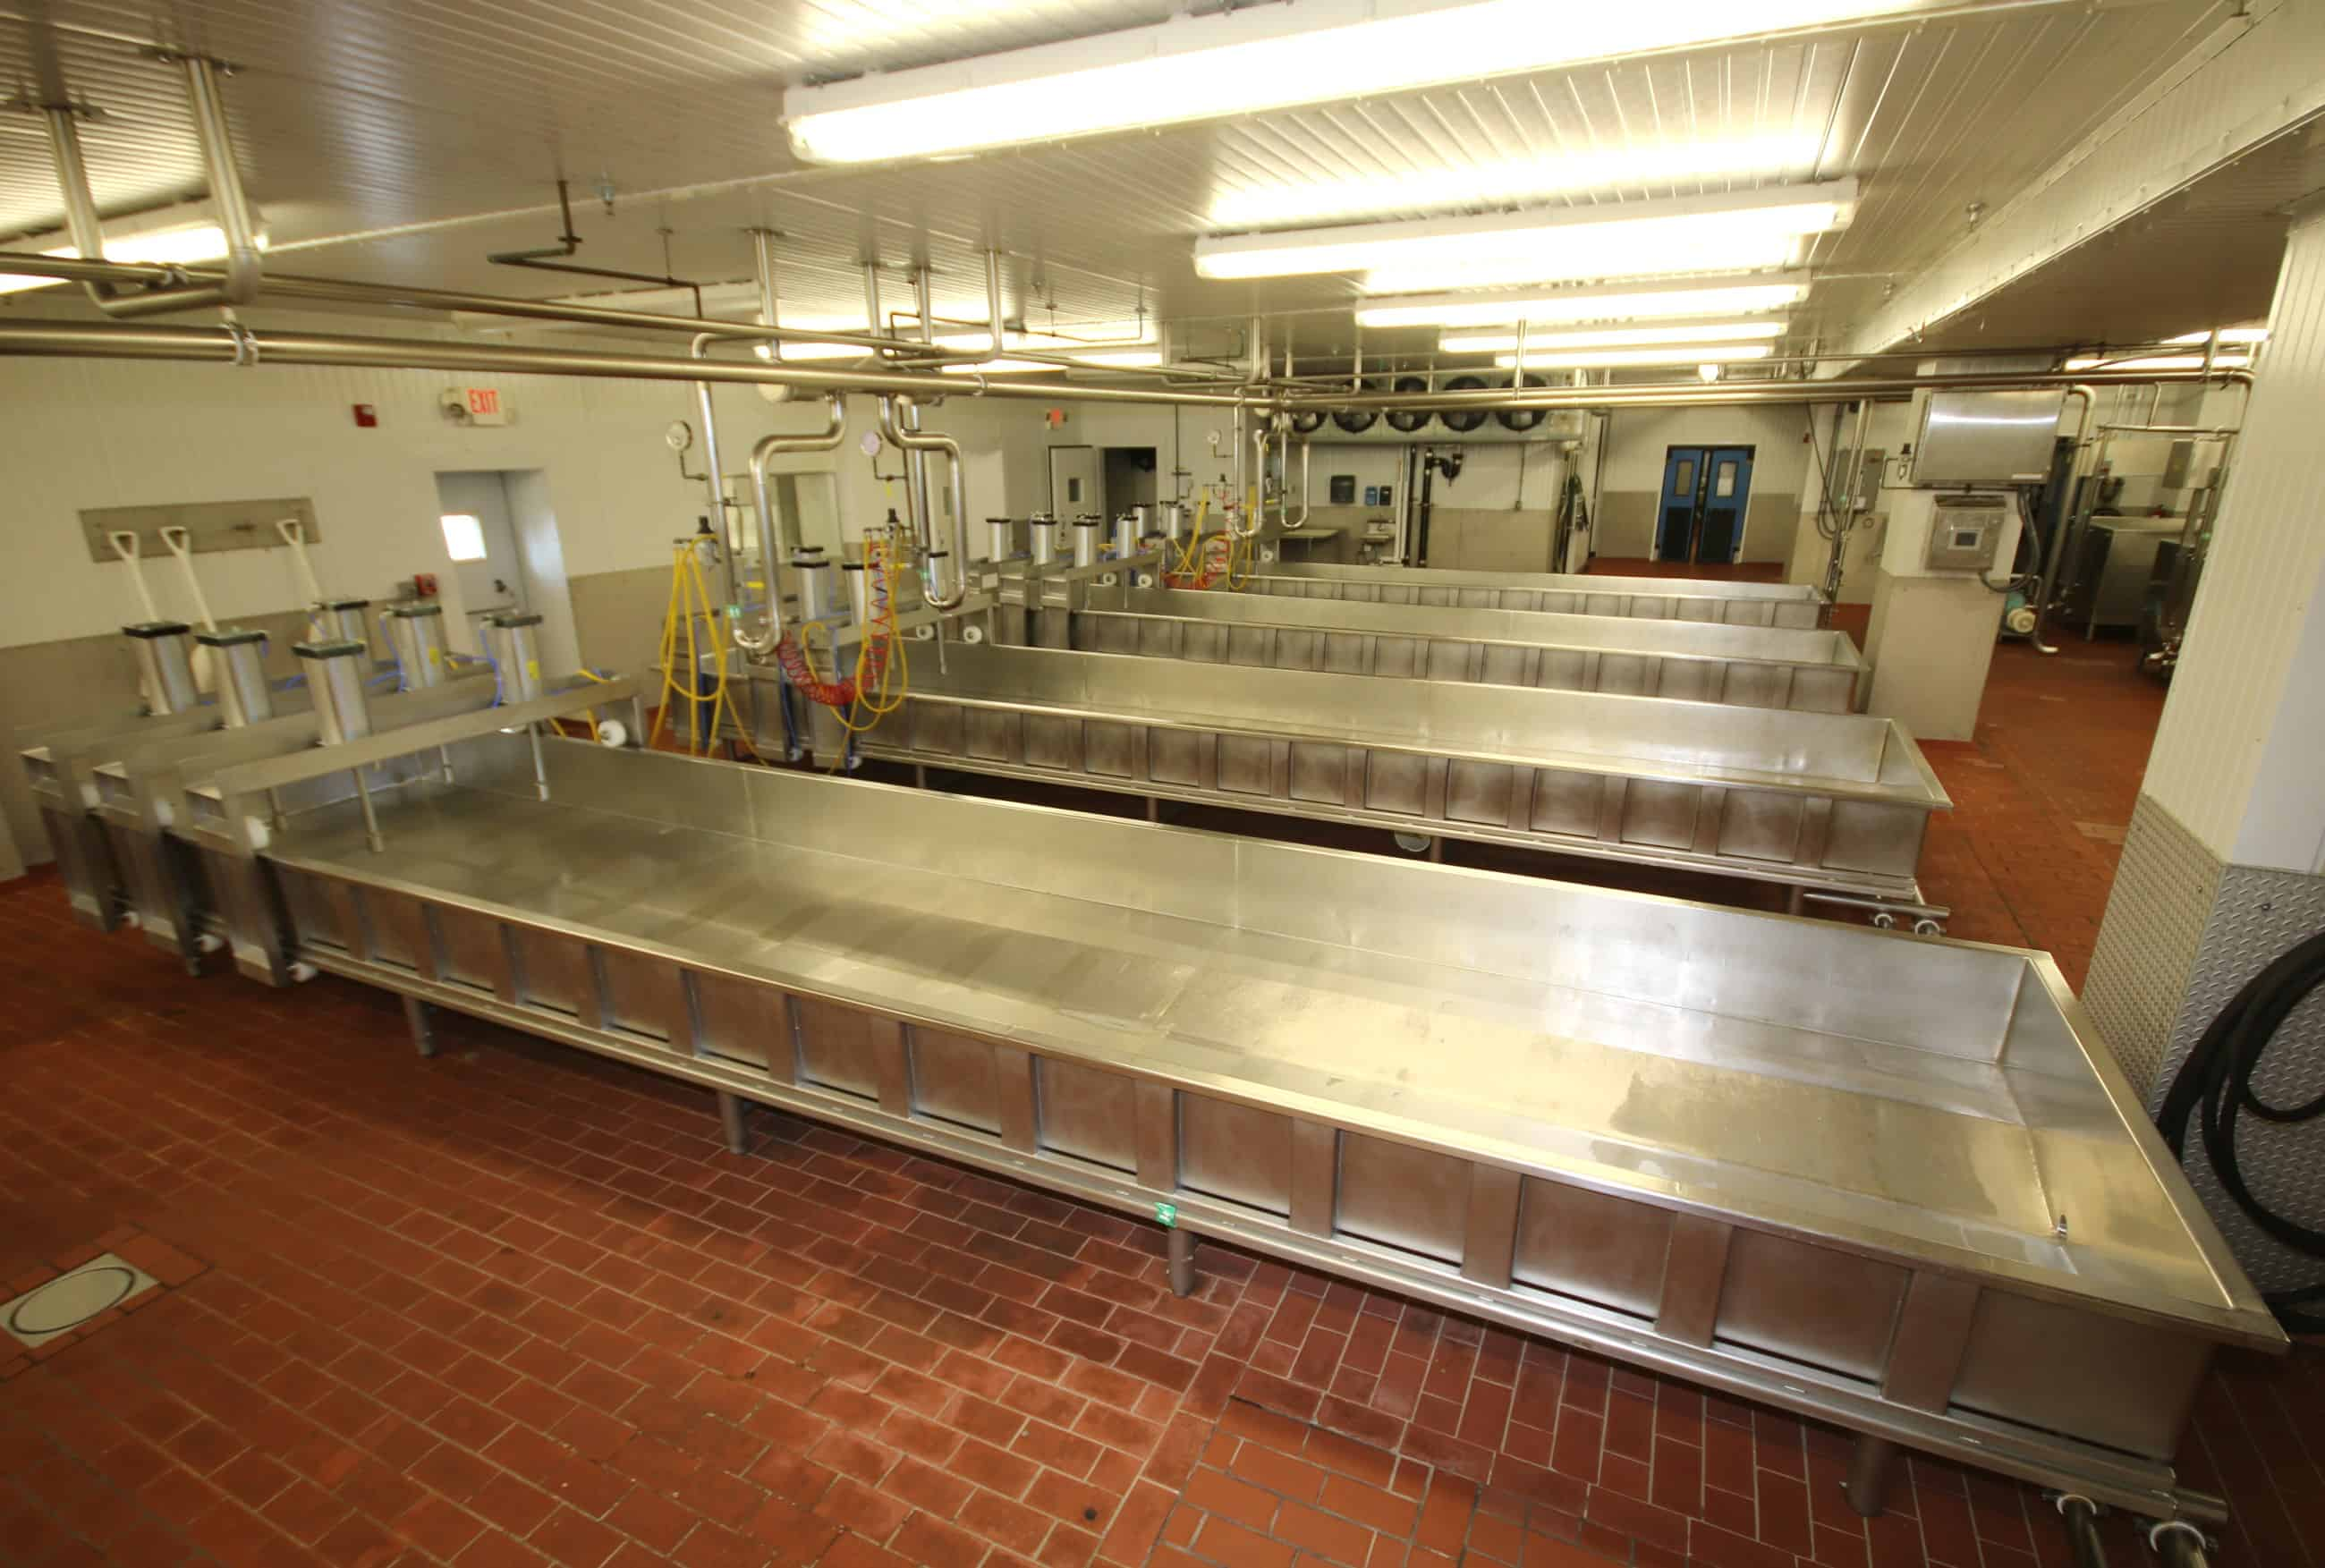 "(5) Kusel 24 ft L x 5 ft W x 14"" H, (Aprox. 1,000 Gal), S/S Cheese Pressing Vats, Model SWPV, SN 0410SWPV46014-6-1, 2, 3, 4 & 5, All with 3 - Station @ 2 Cylinder Top Mount Vertical Pneumatic Presses"